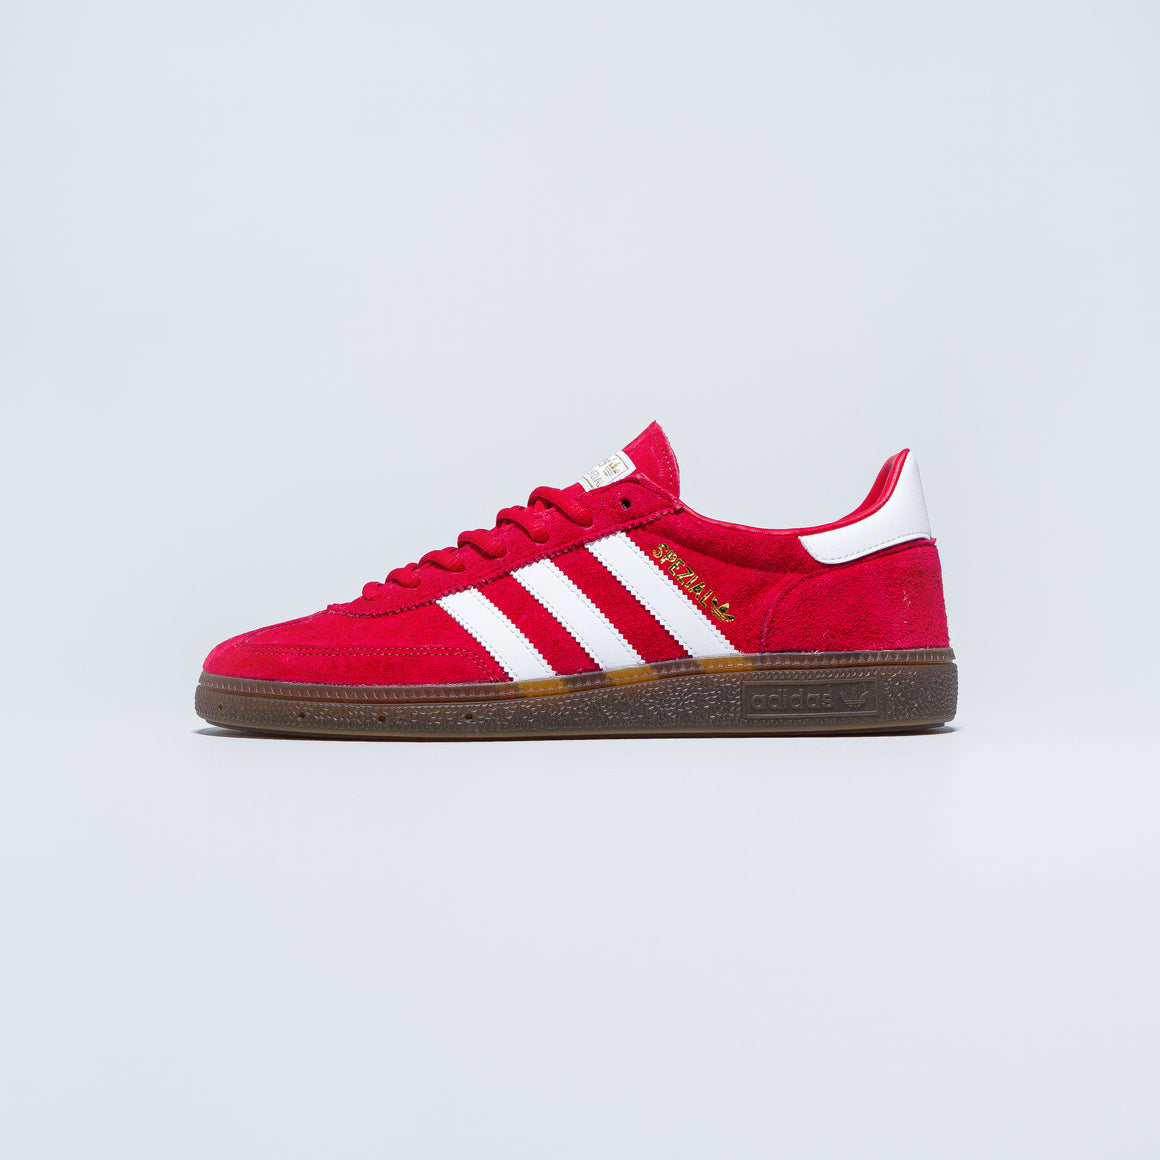 adidas - Handball Spezial - Scarlet/Footwear White - Up There